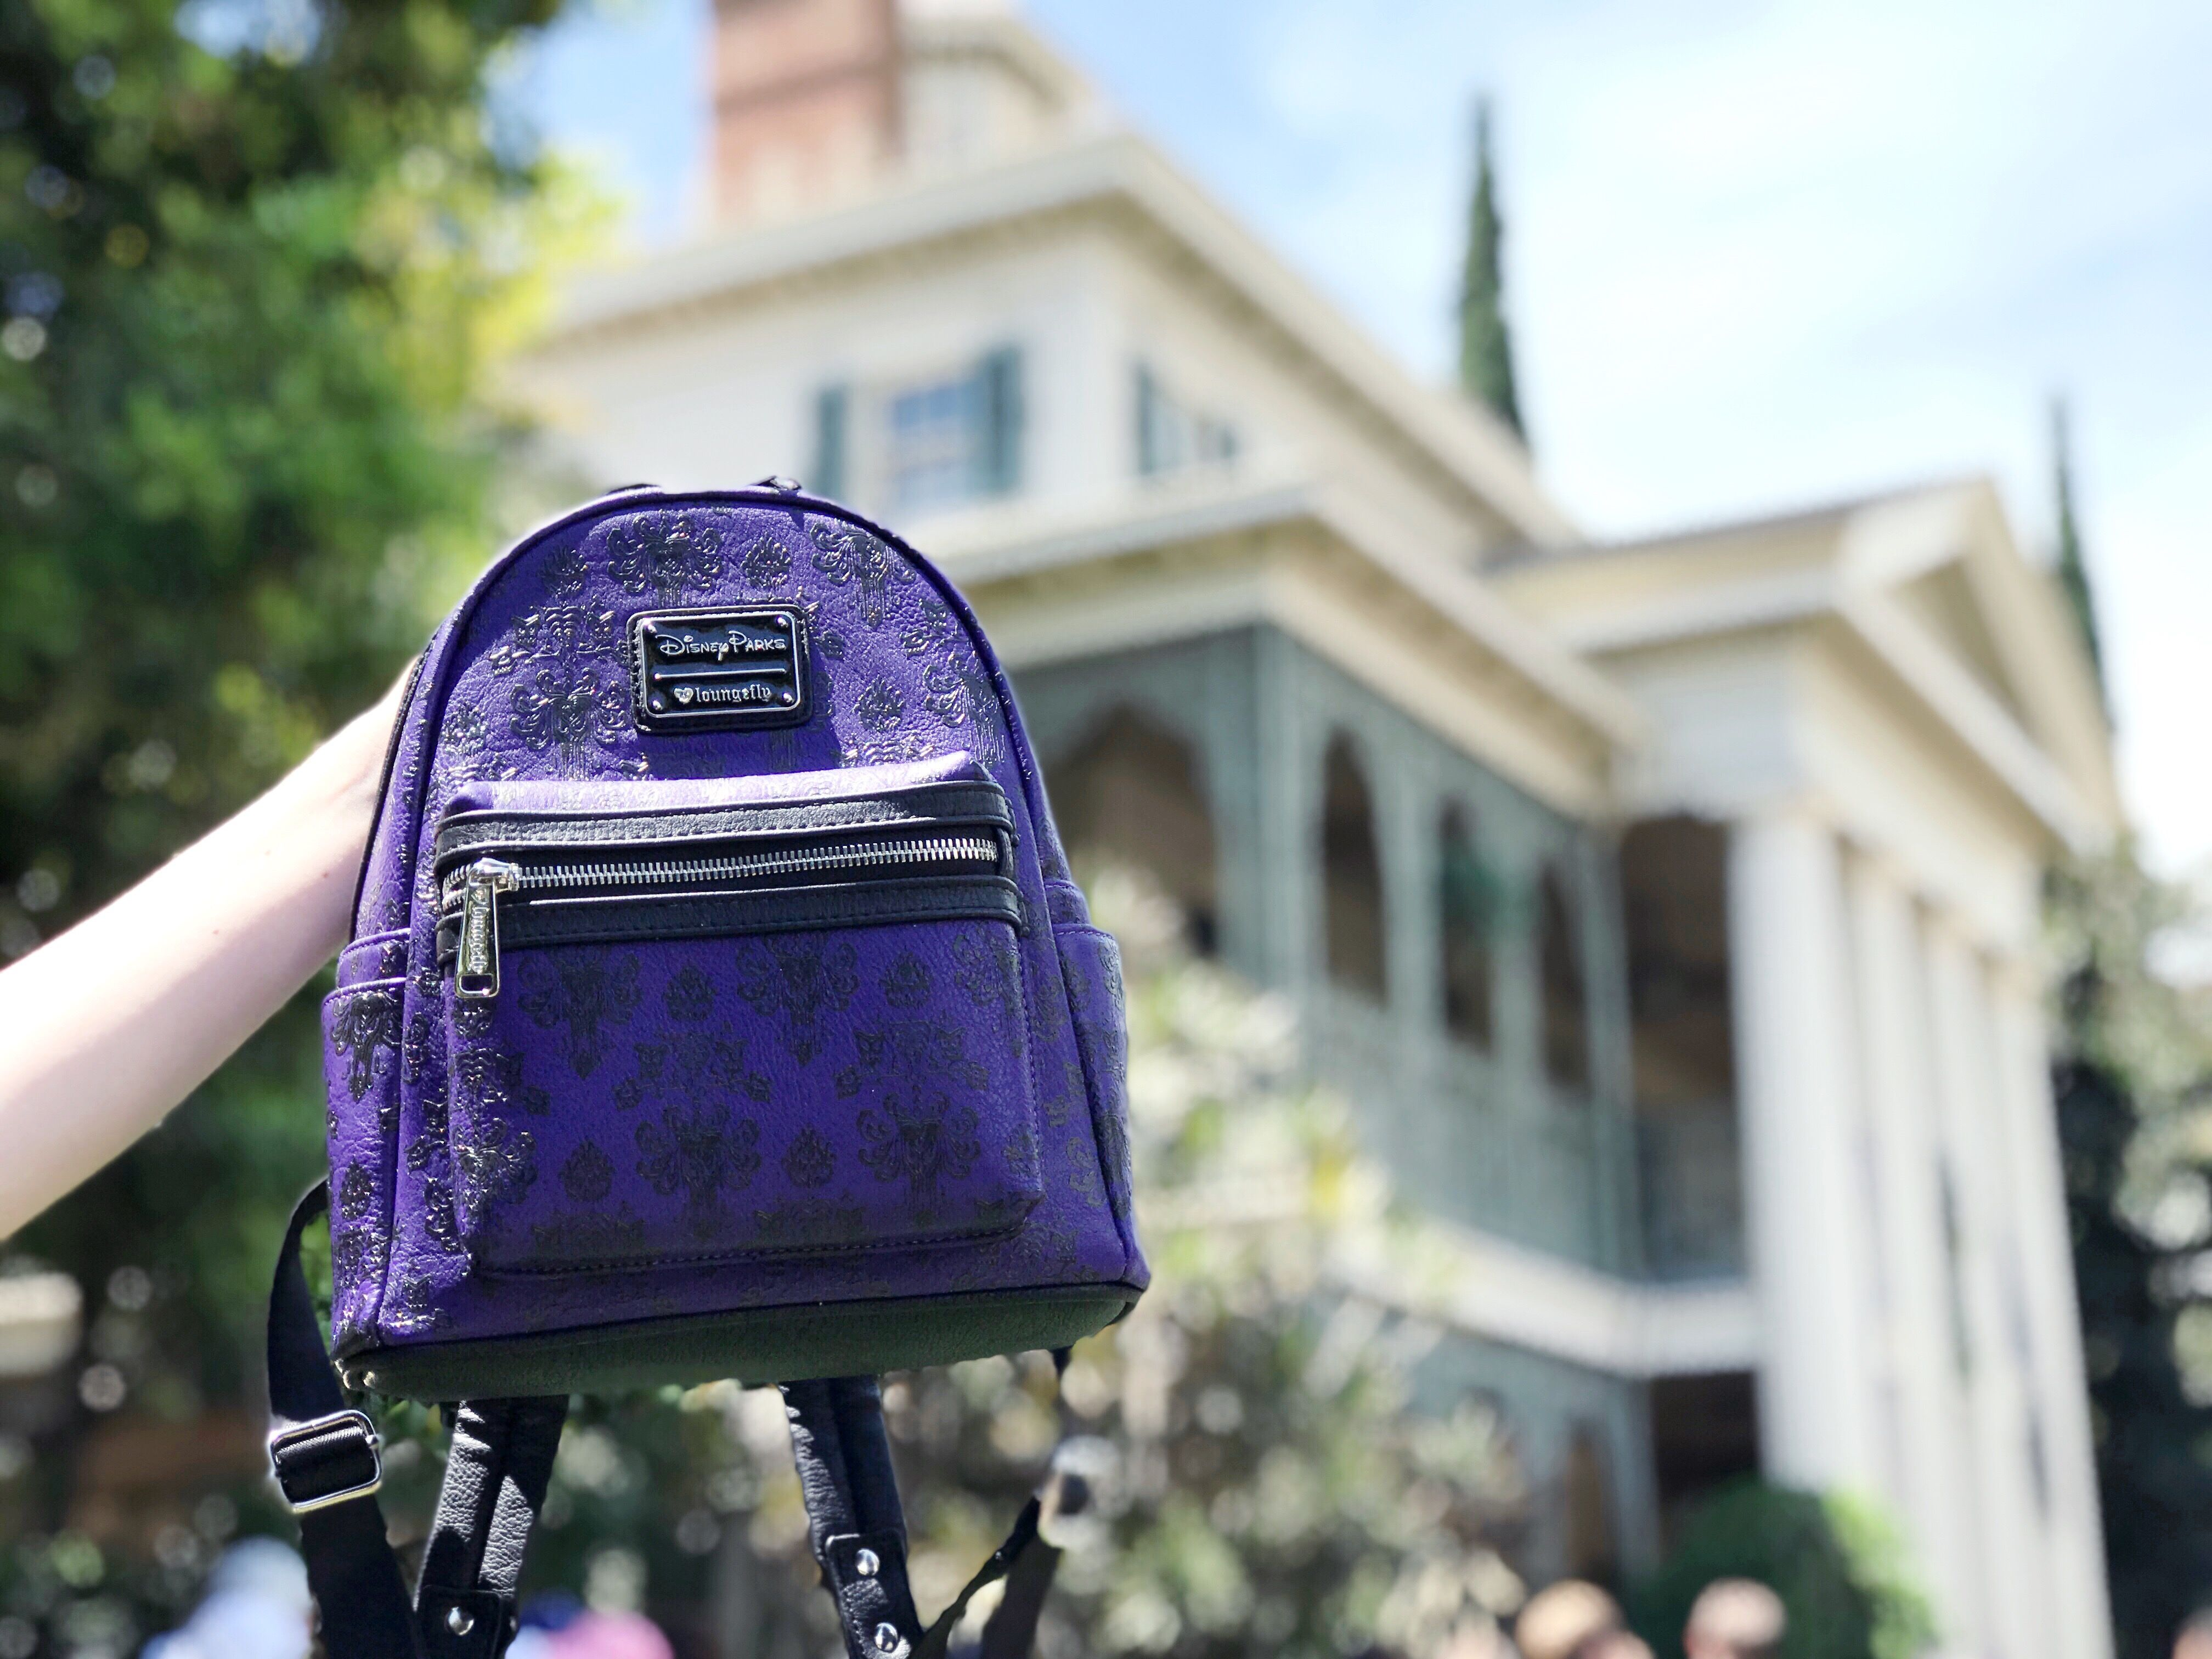 Disney Parks and Loungefly Selling Mini Backpacks Based on Disney Rides